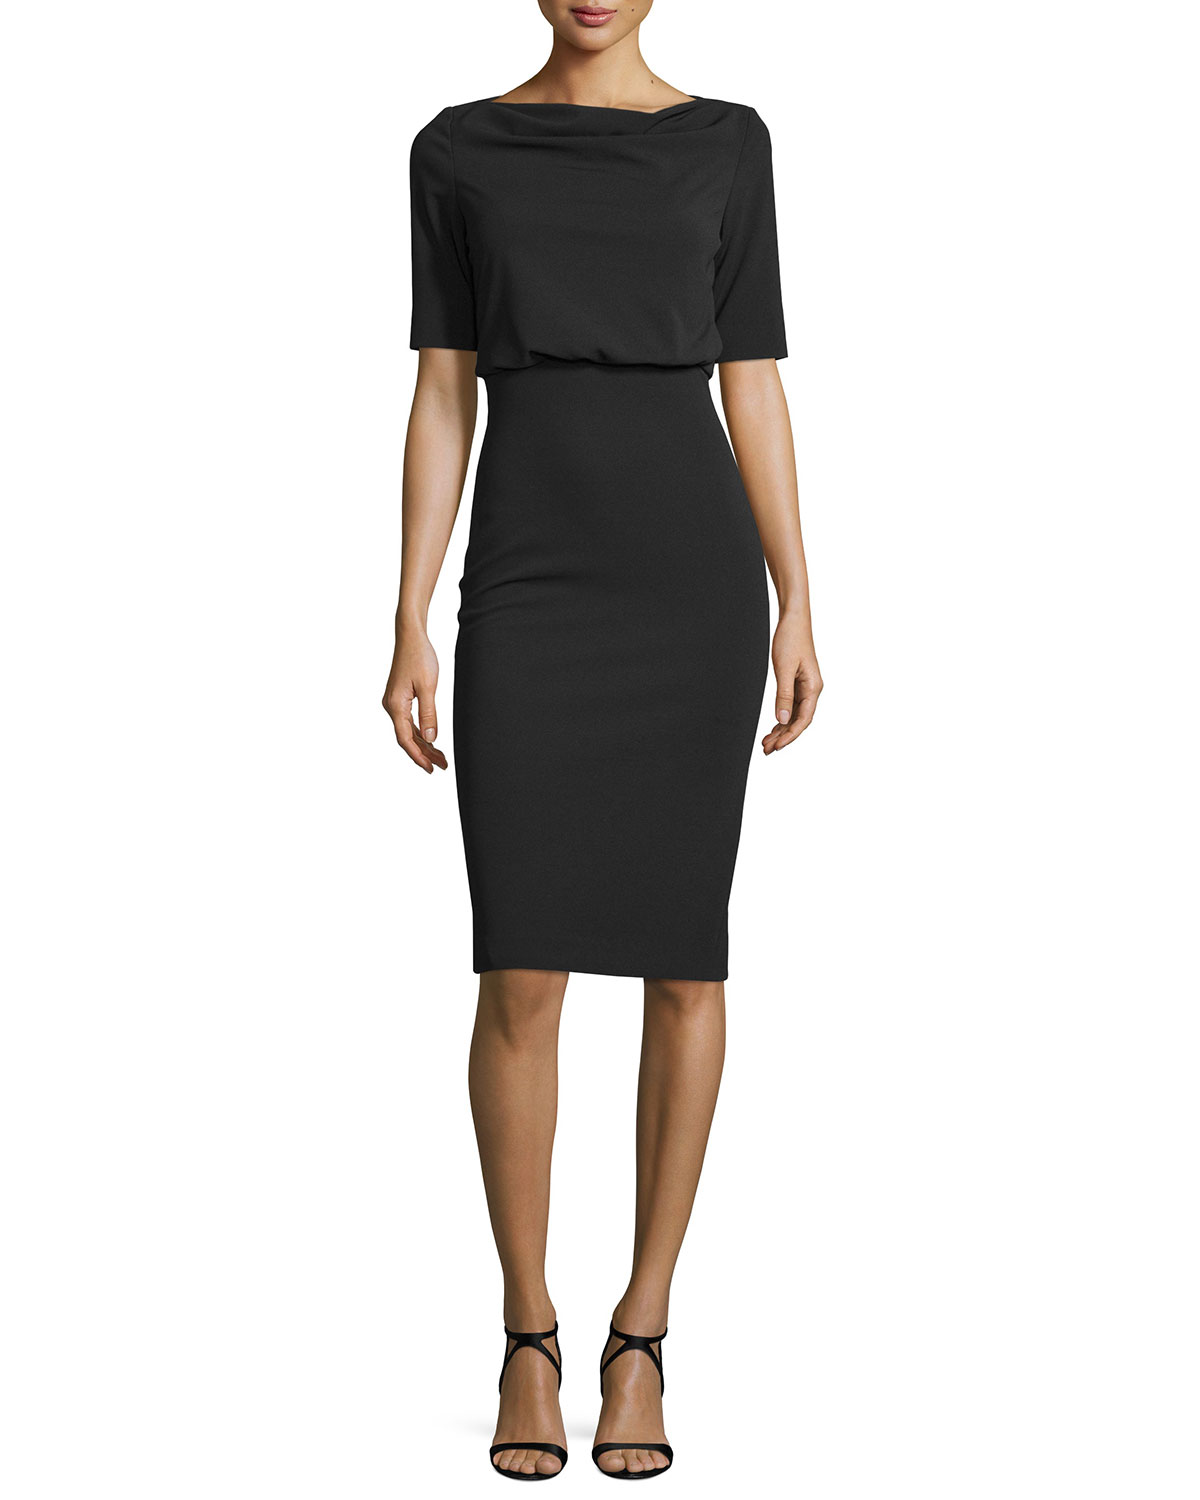 Short-Sleeve Blouson Cocktail Dress, Black